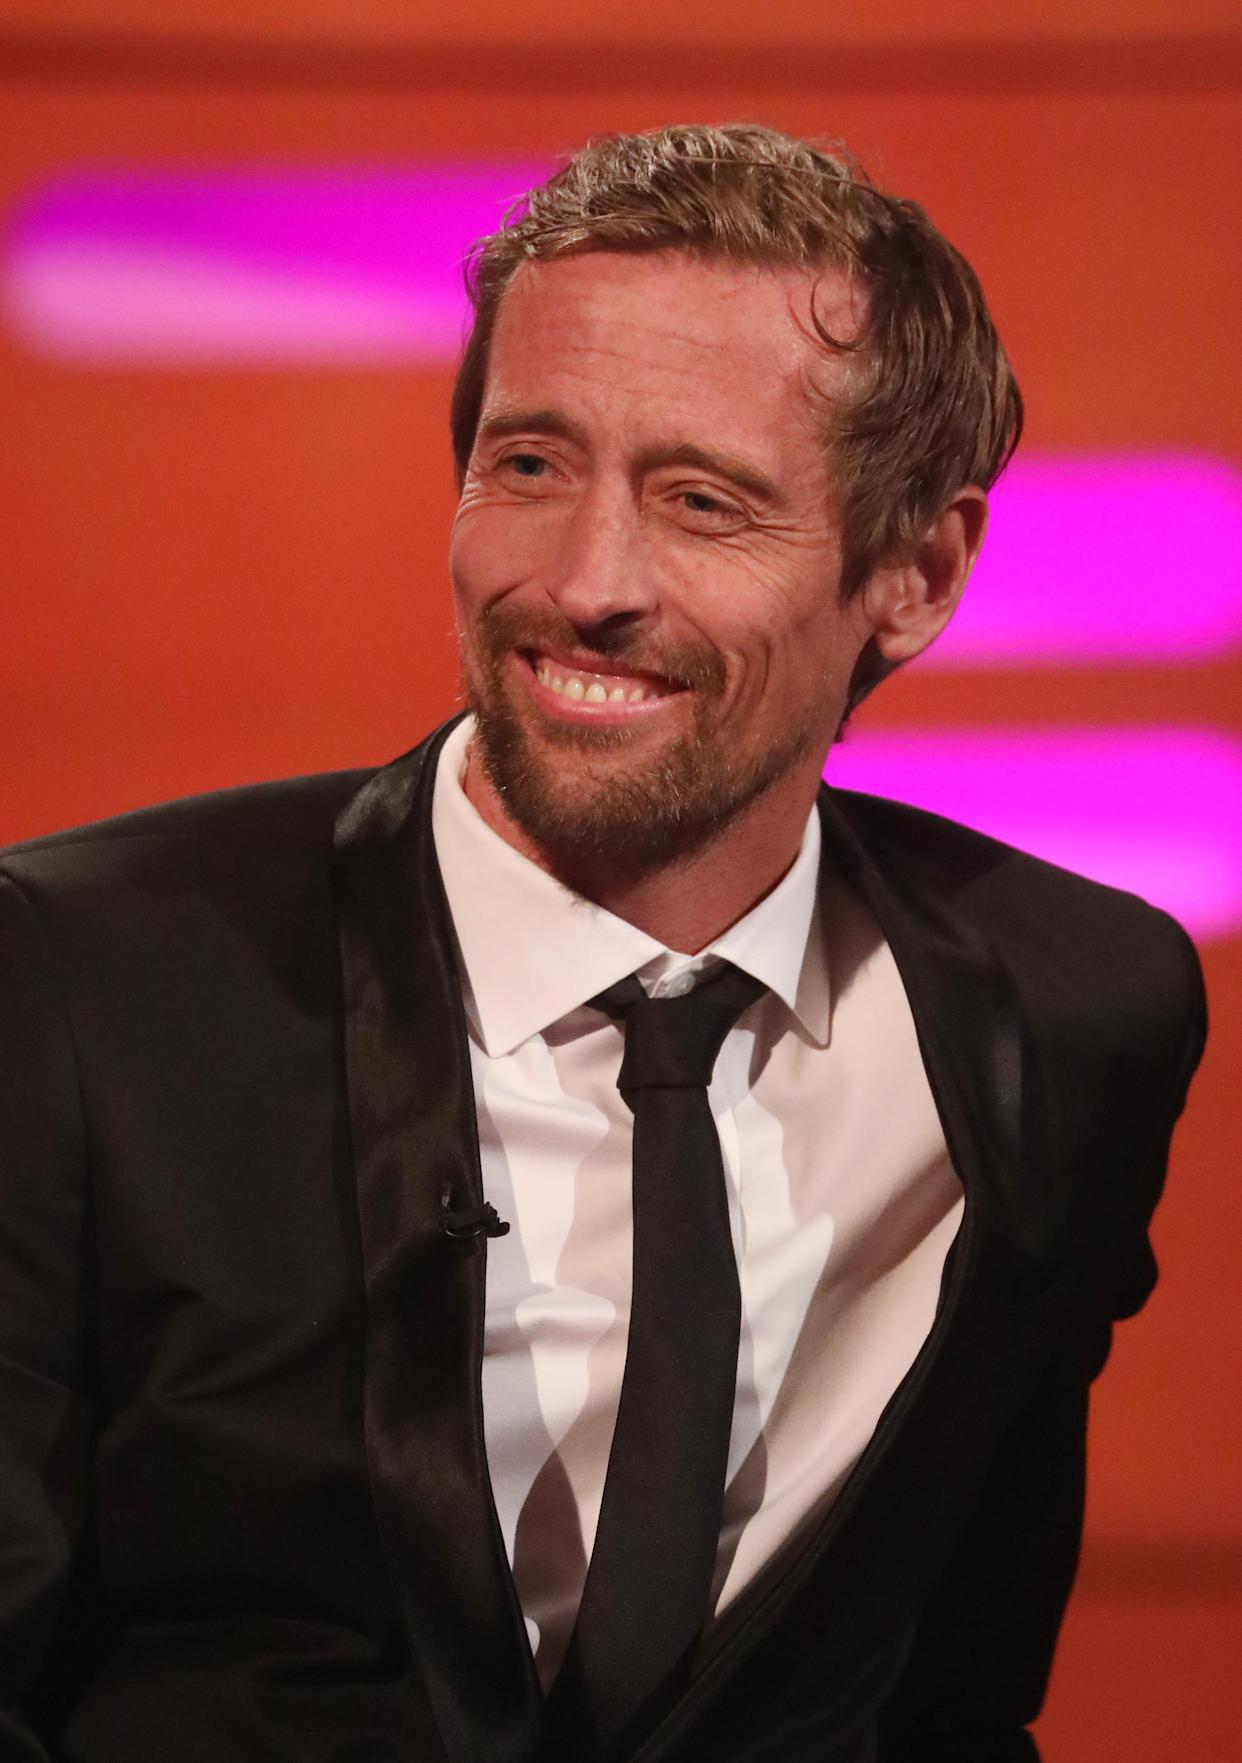 Peter Crouch during the filming for the Graham Norton Show at BBC Studioworks 6 Television Centre, Wood Lane, London, to be aired on BBC One on Friday evening.